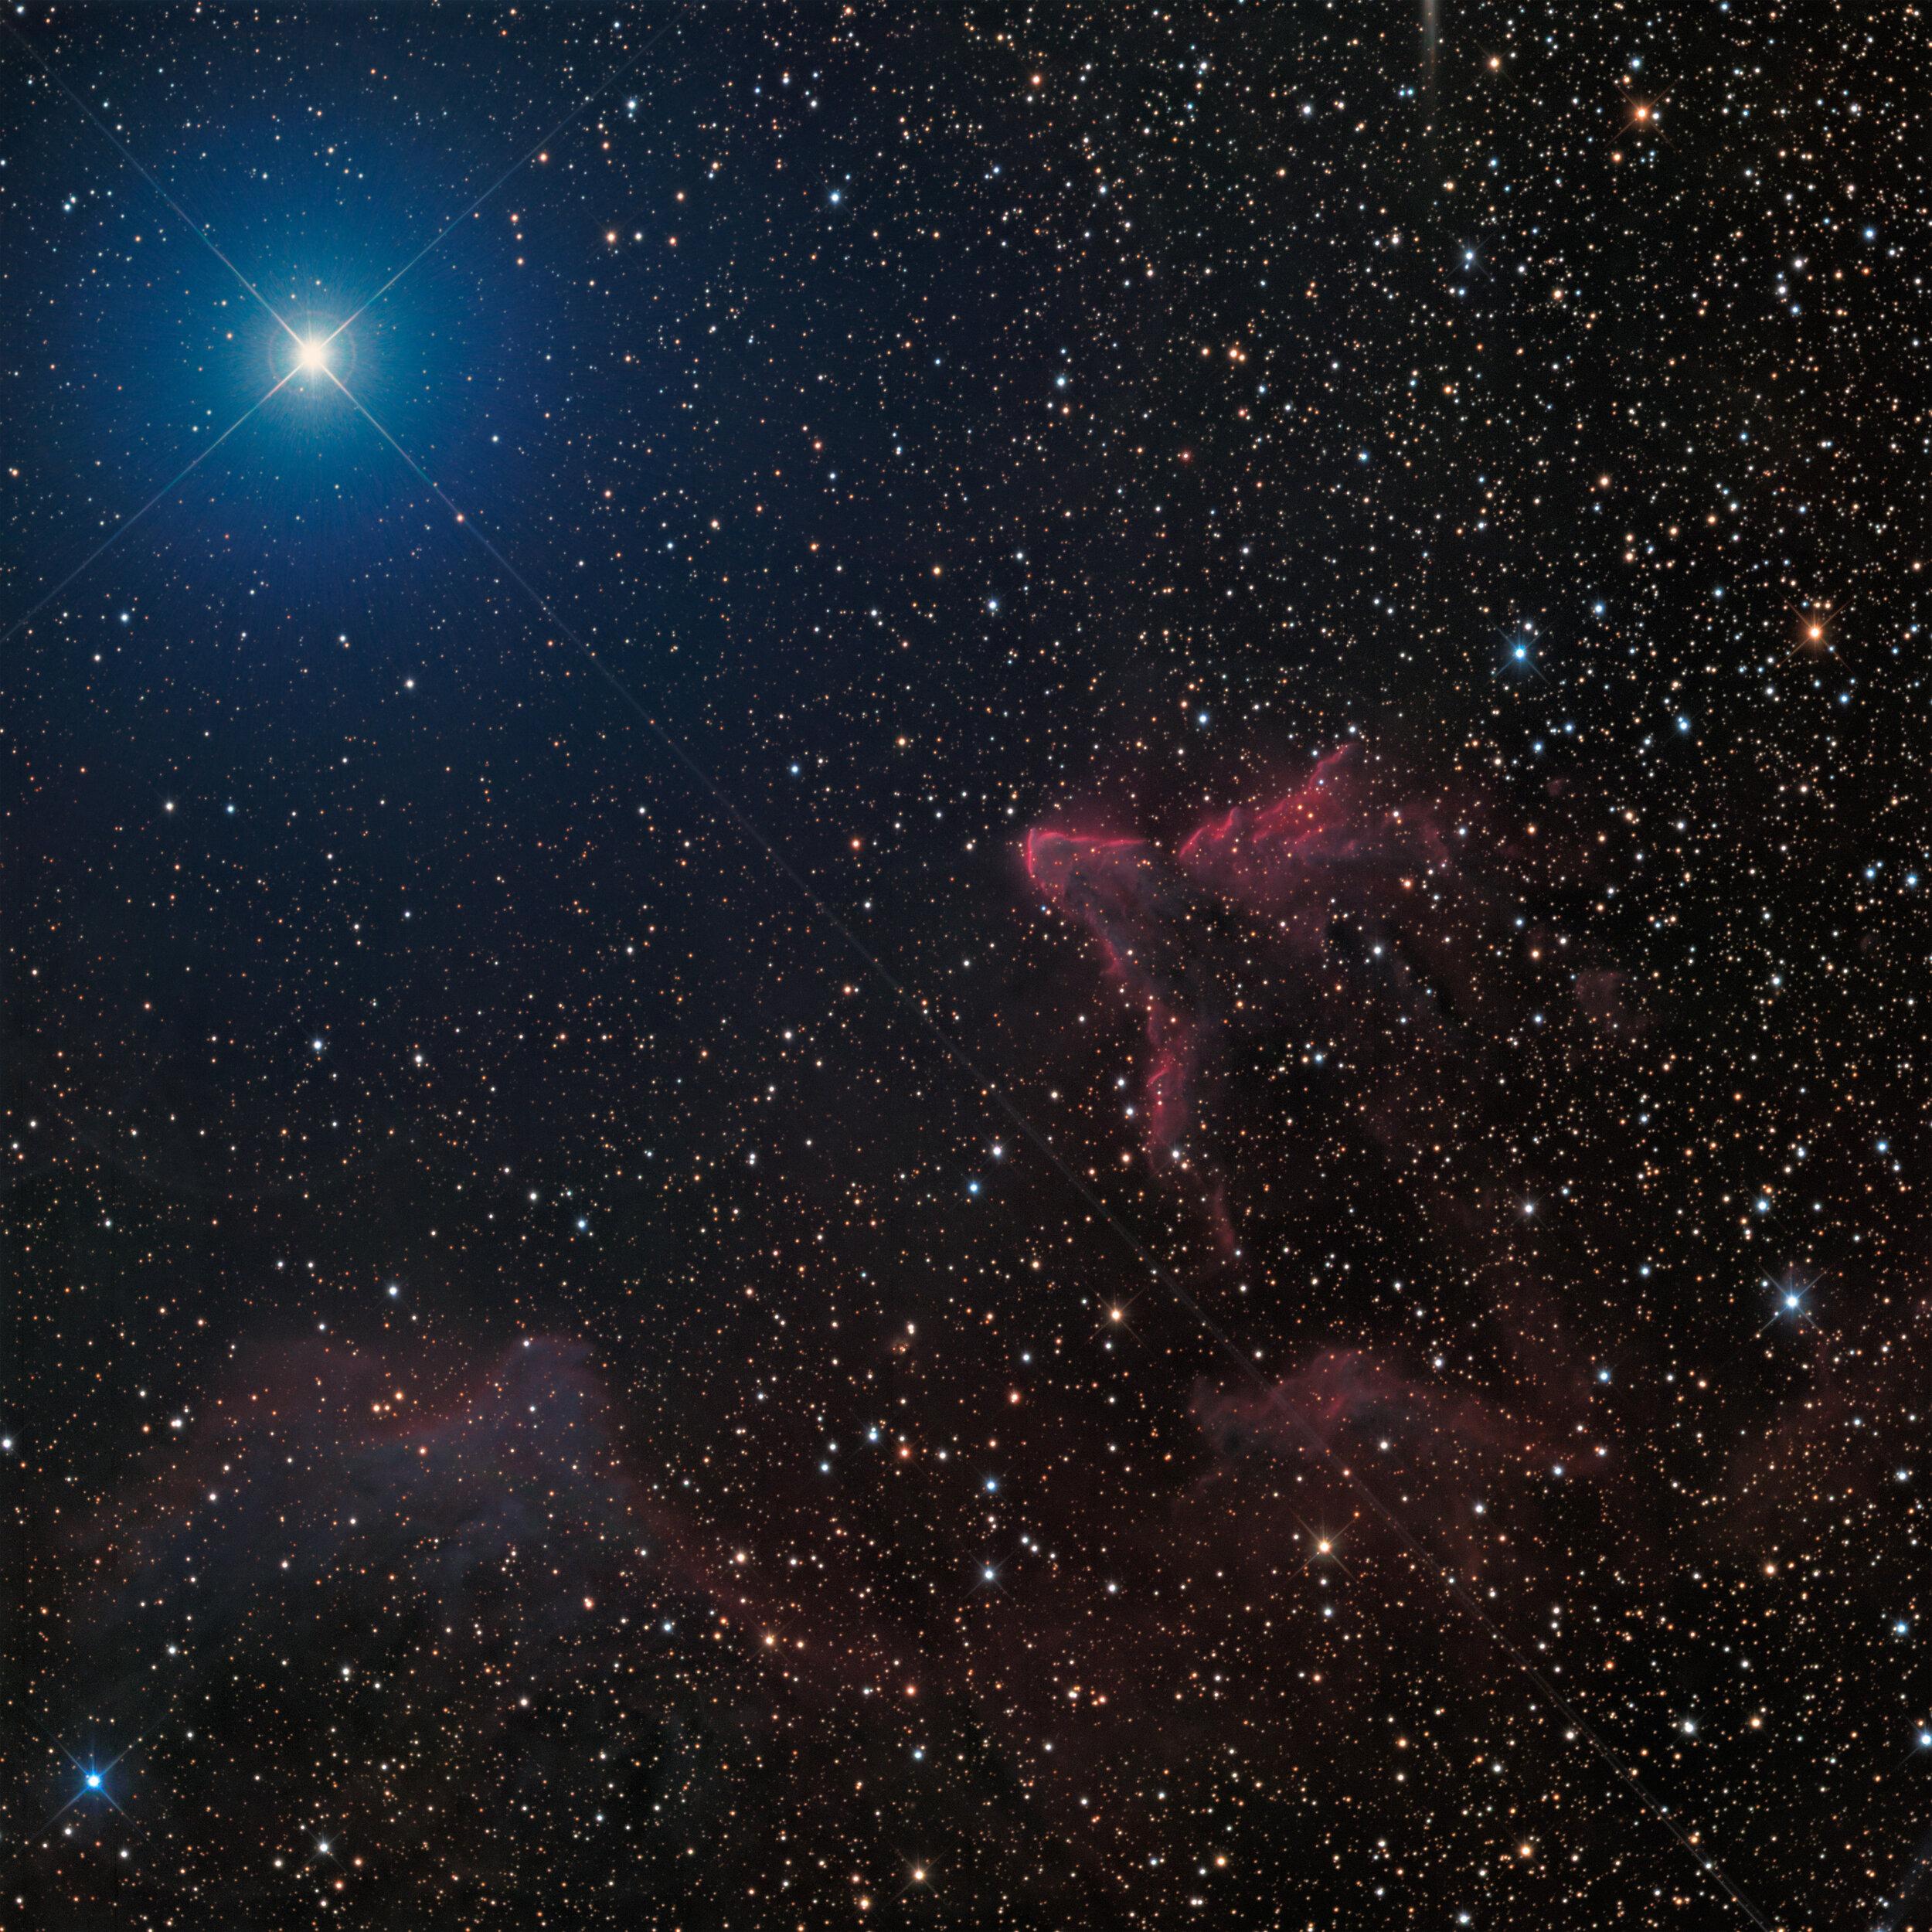 IC 59 and IC 63 in Cassiopeia Astrophotography Martin Rusterholz